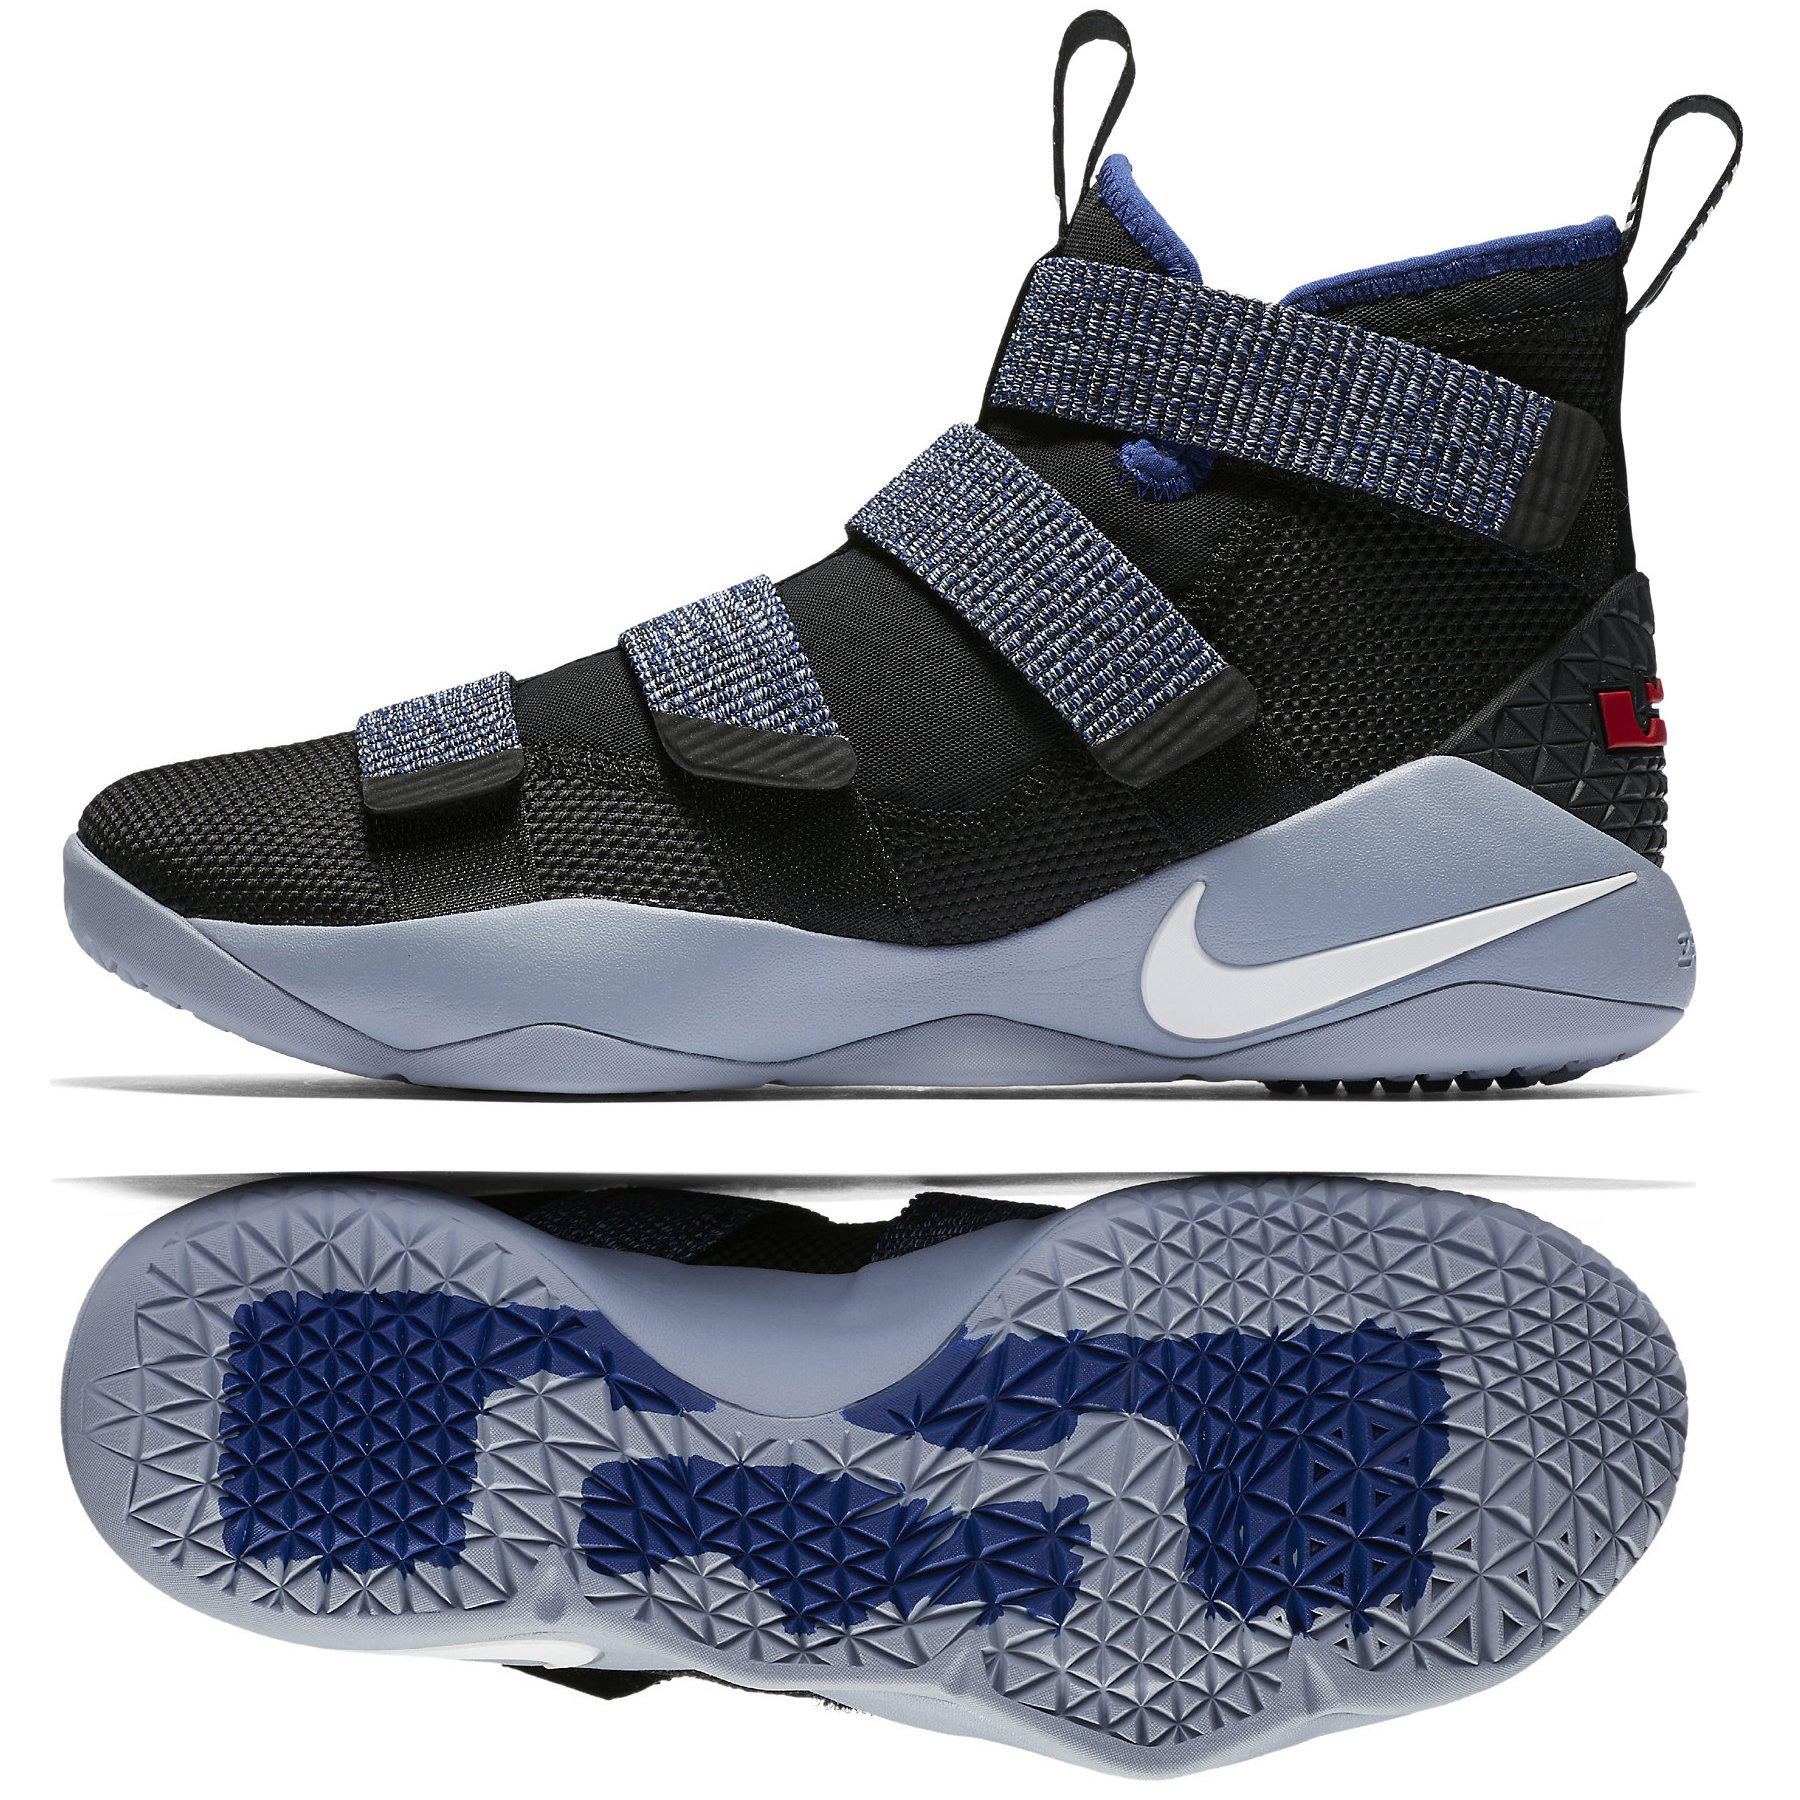 1cd86e116d0fa Galleon - NIKE Lebron Soldier Xi 897644 005 Black White Deep Royal Blue Men s  Basketball Shoes (9)